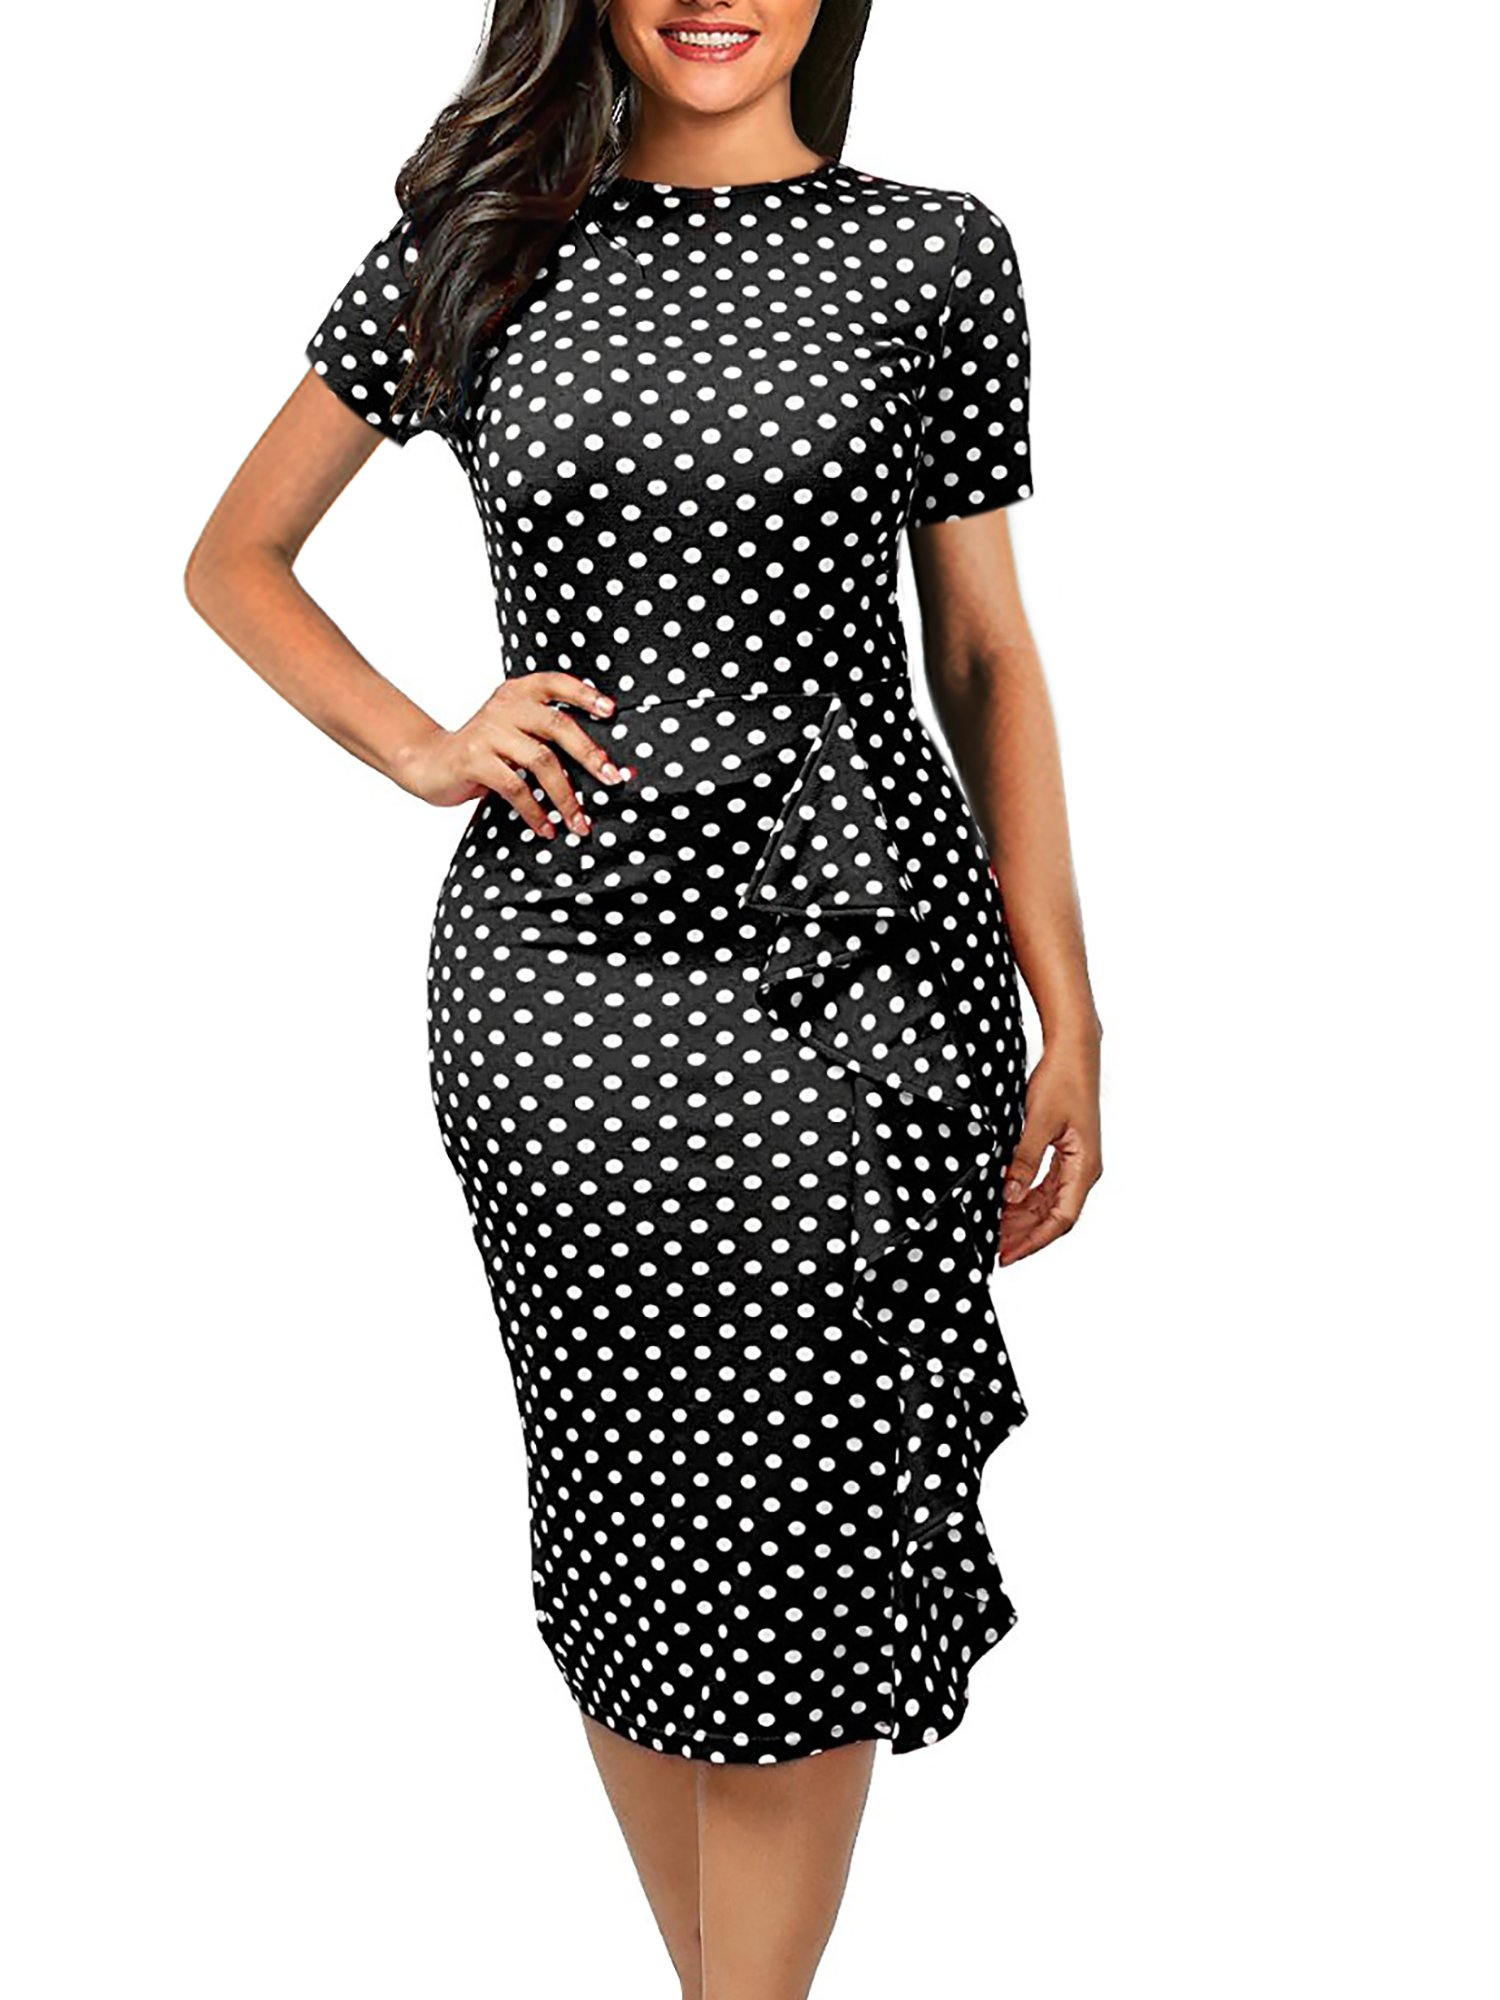 CISMARK Women's Vintage Short Sleeve Polka Dot Falbala Fold Slim Fit Pencil Dress